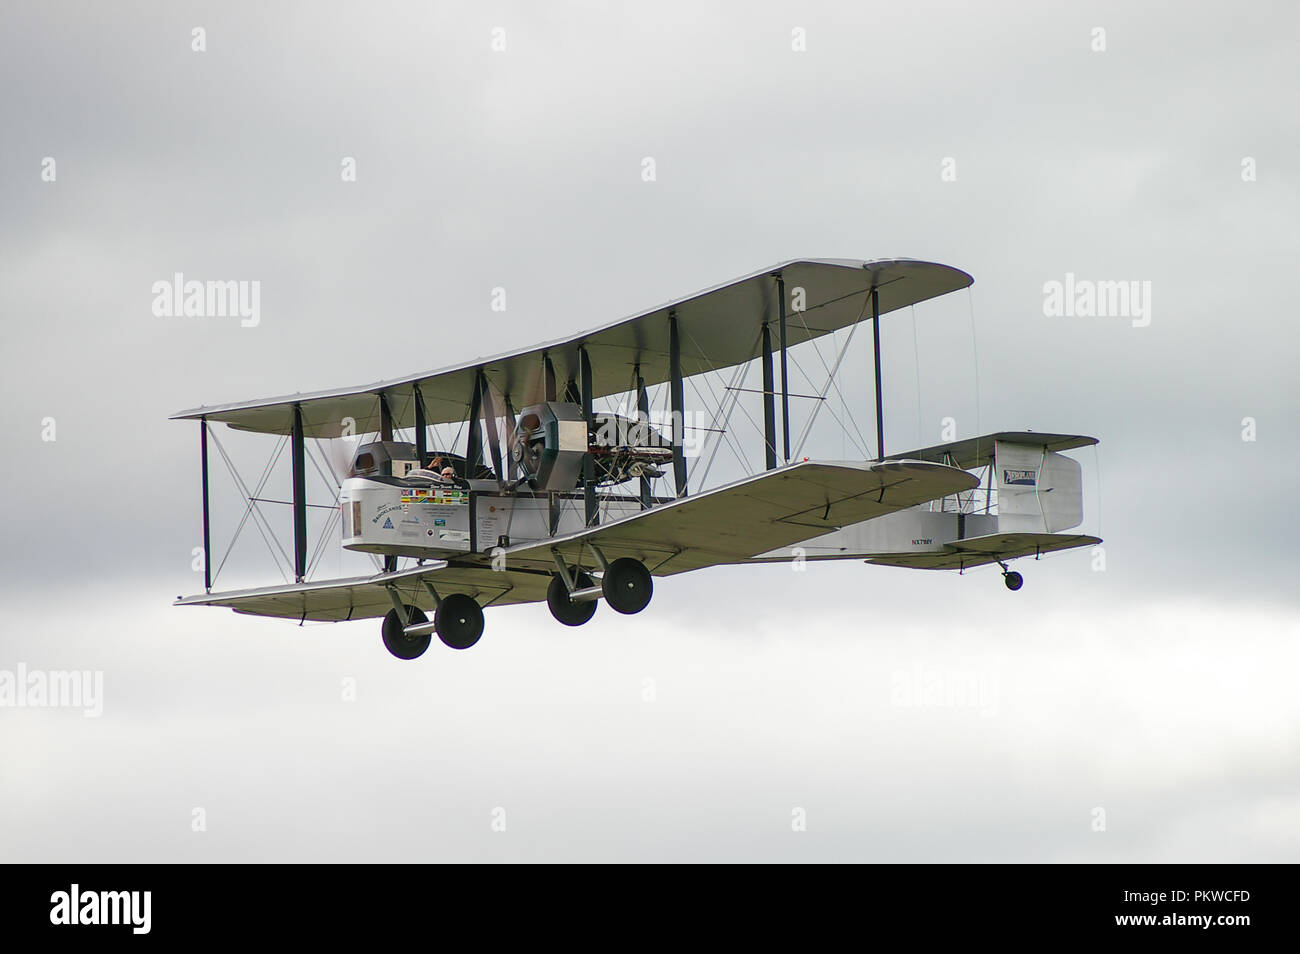 vickers-vimy-british-heavy-bomber-aircraft-plane-biplane-of-first-world-war-great-war-world-war-one-raf-recreated-alcock-brown-atlantic-flight-PKWCFD.jpg